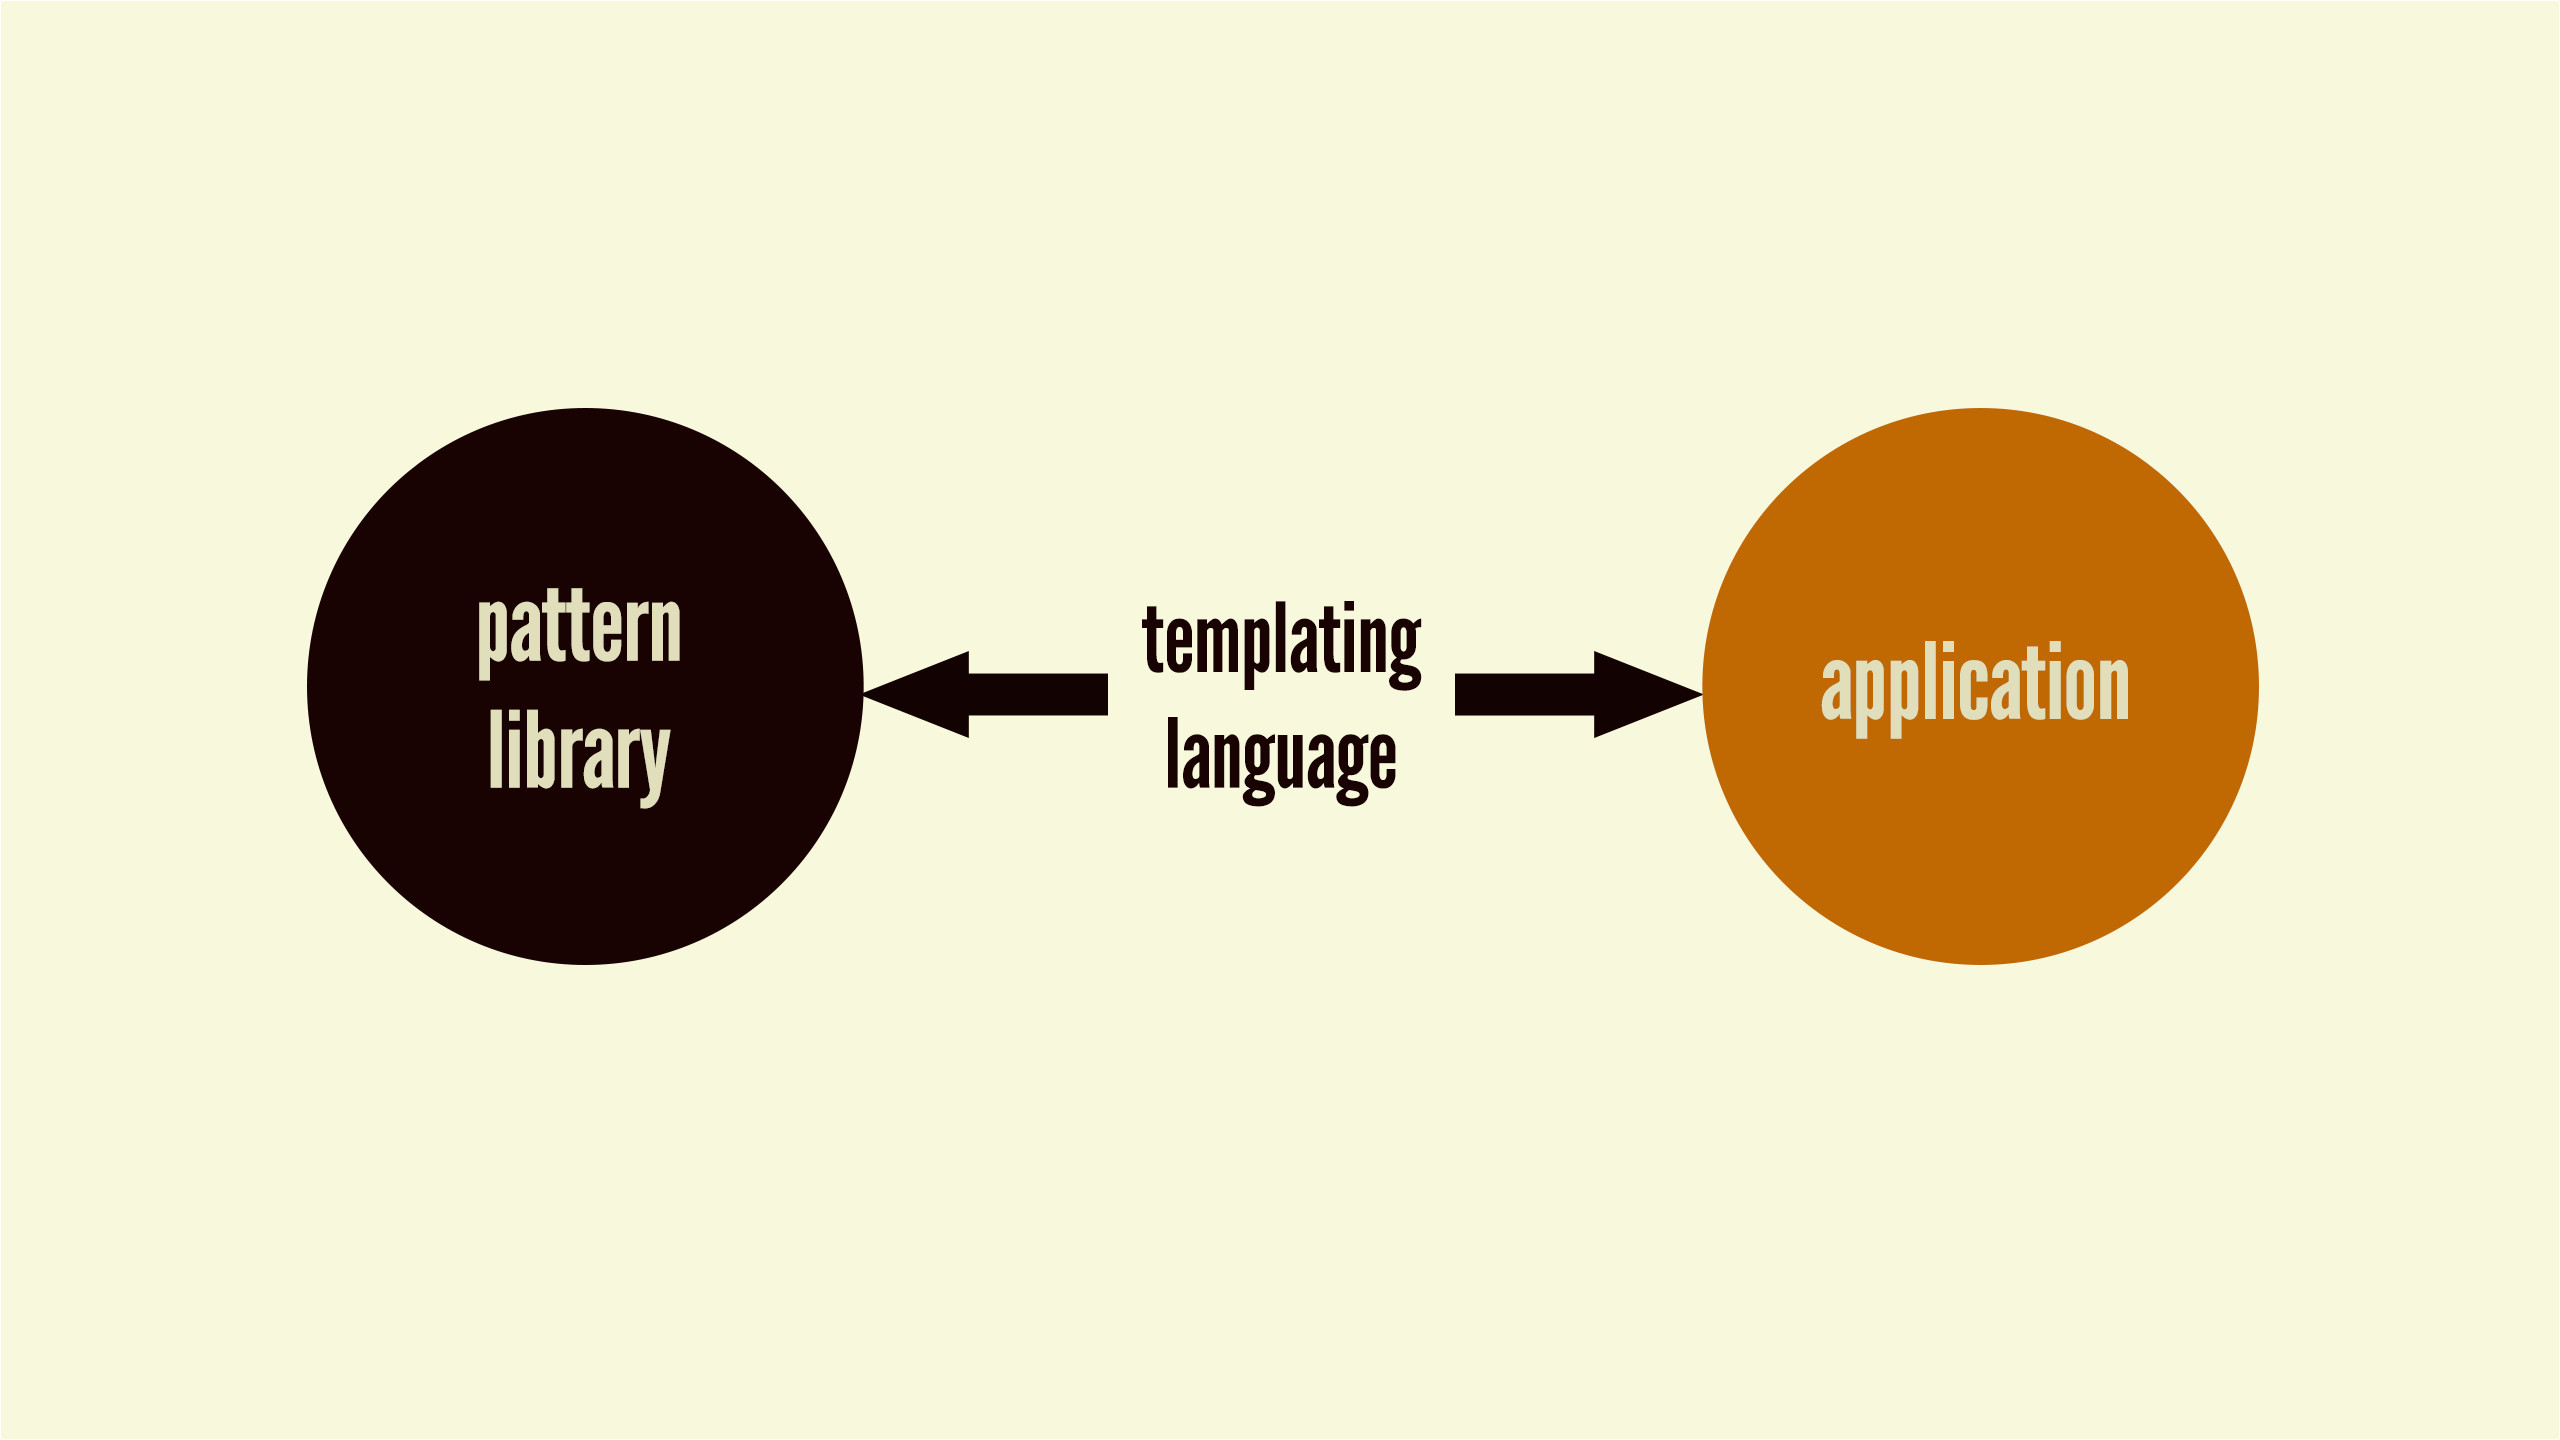 Templating Language Maintaining Design Systems atomic Design by Brad Frost